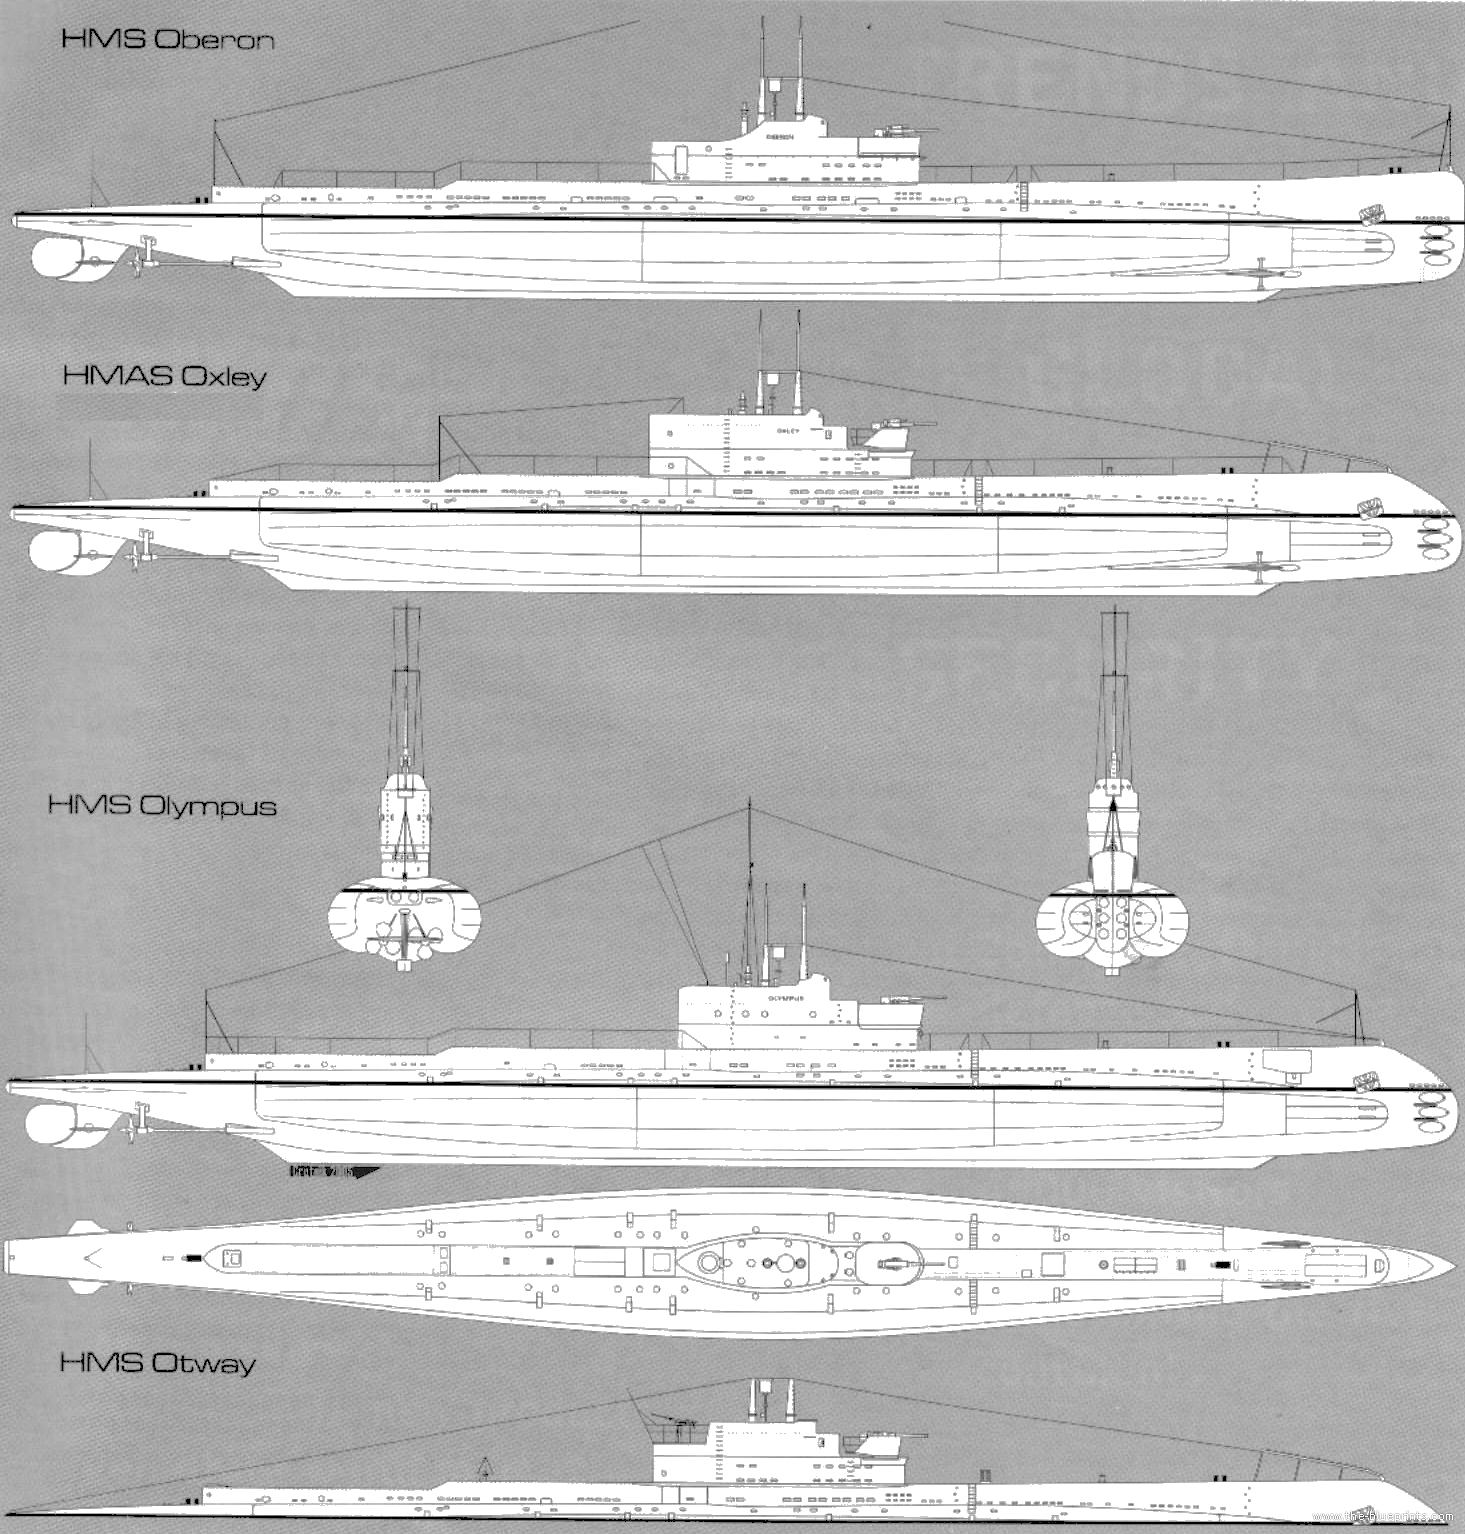 http://www.the-blueprints.com/blueprints-depot/ships/ships-uk/hms-odin-class-submarines.png